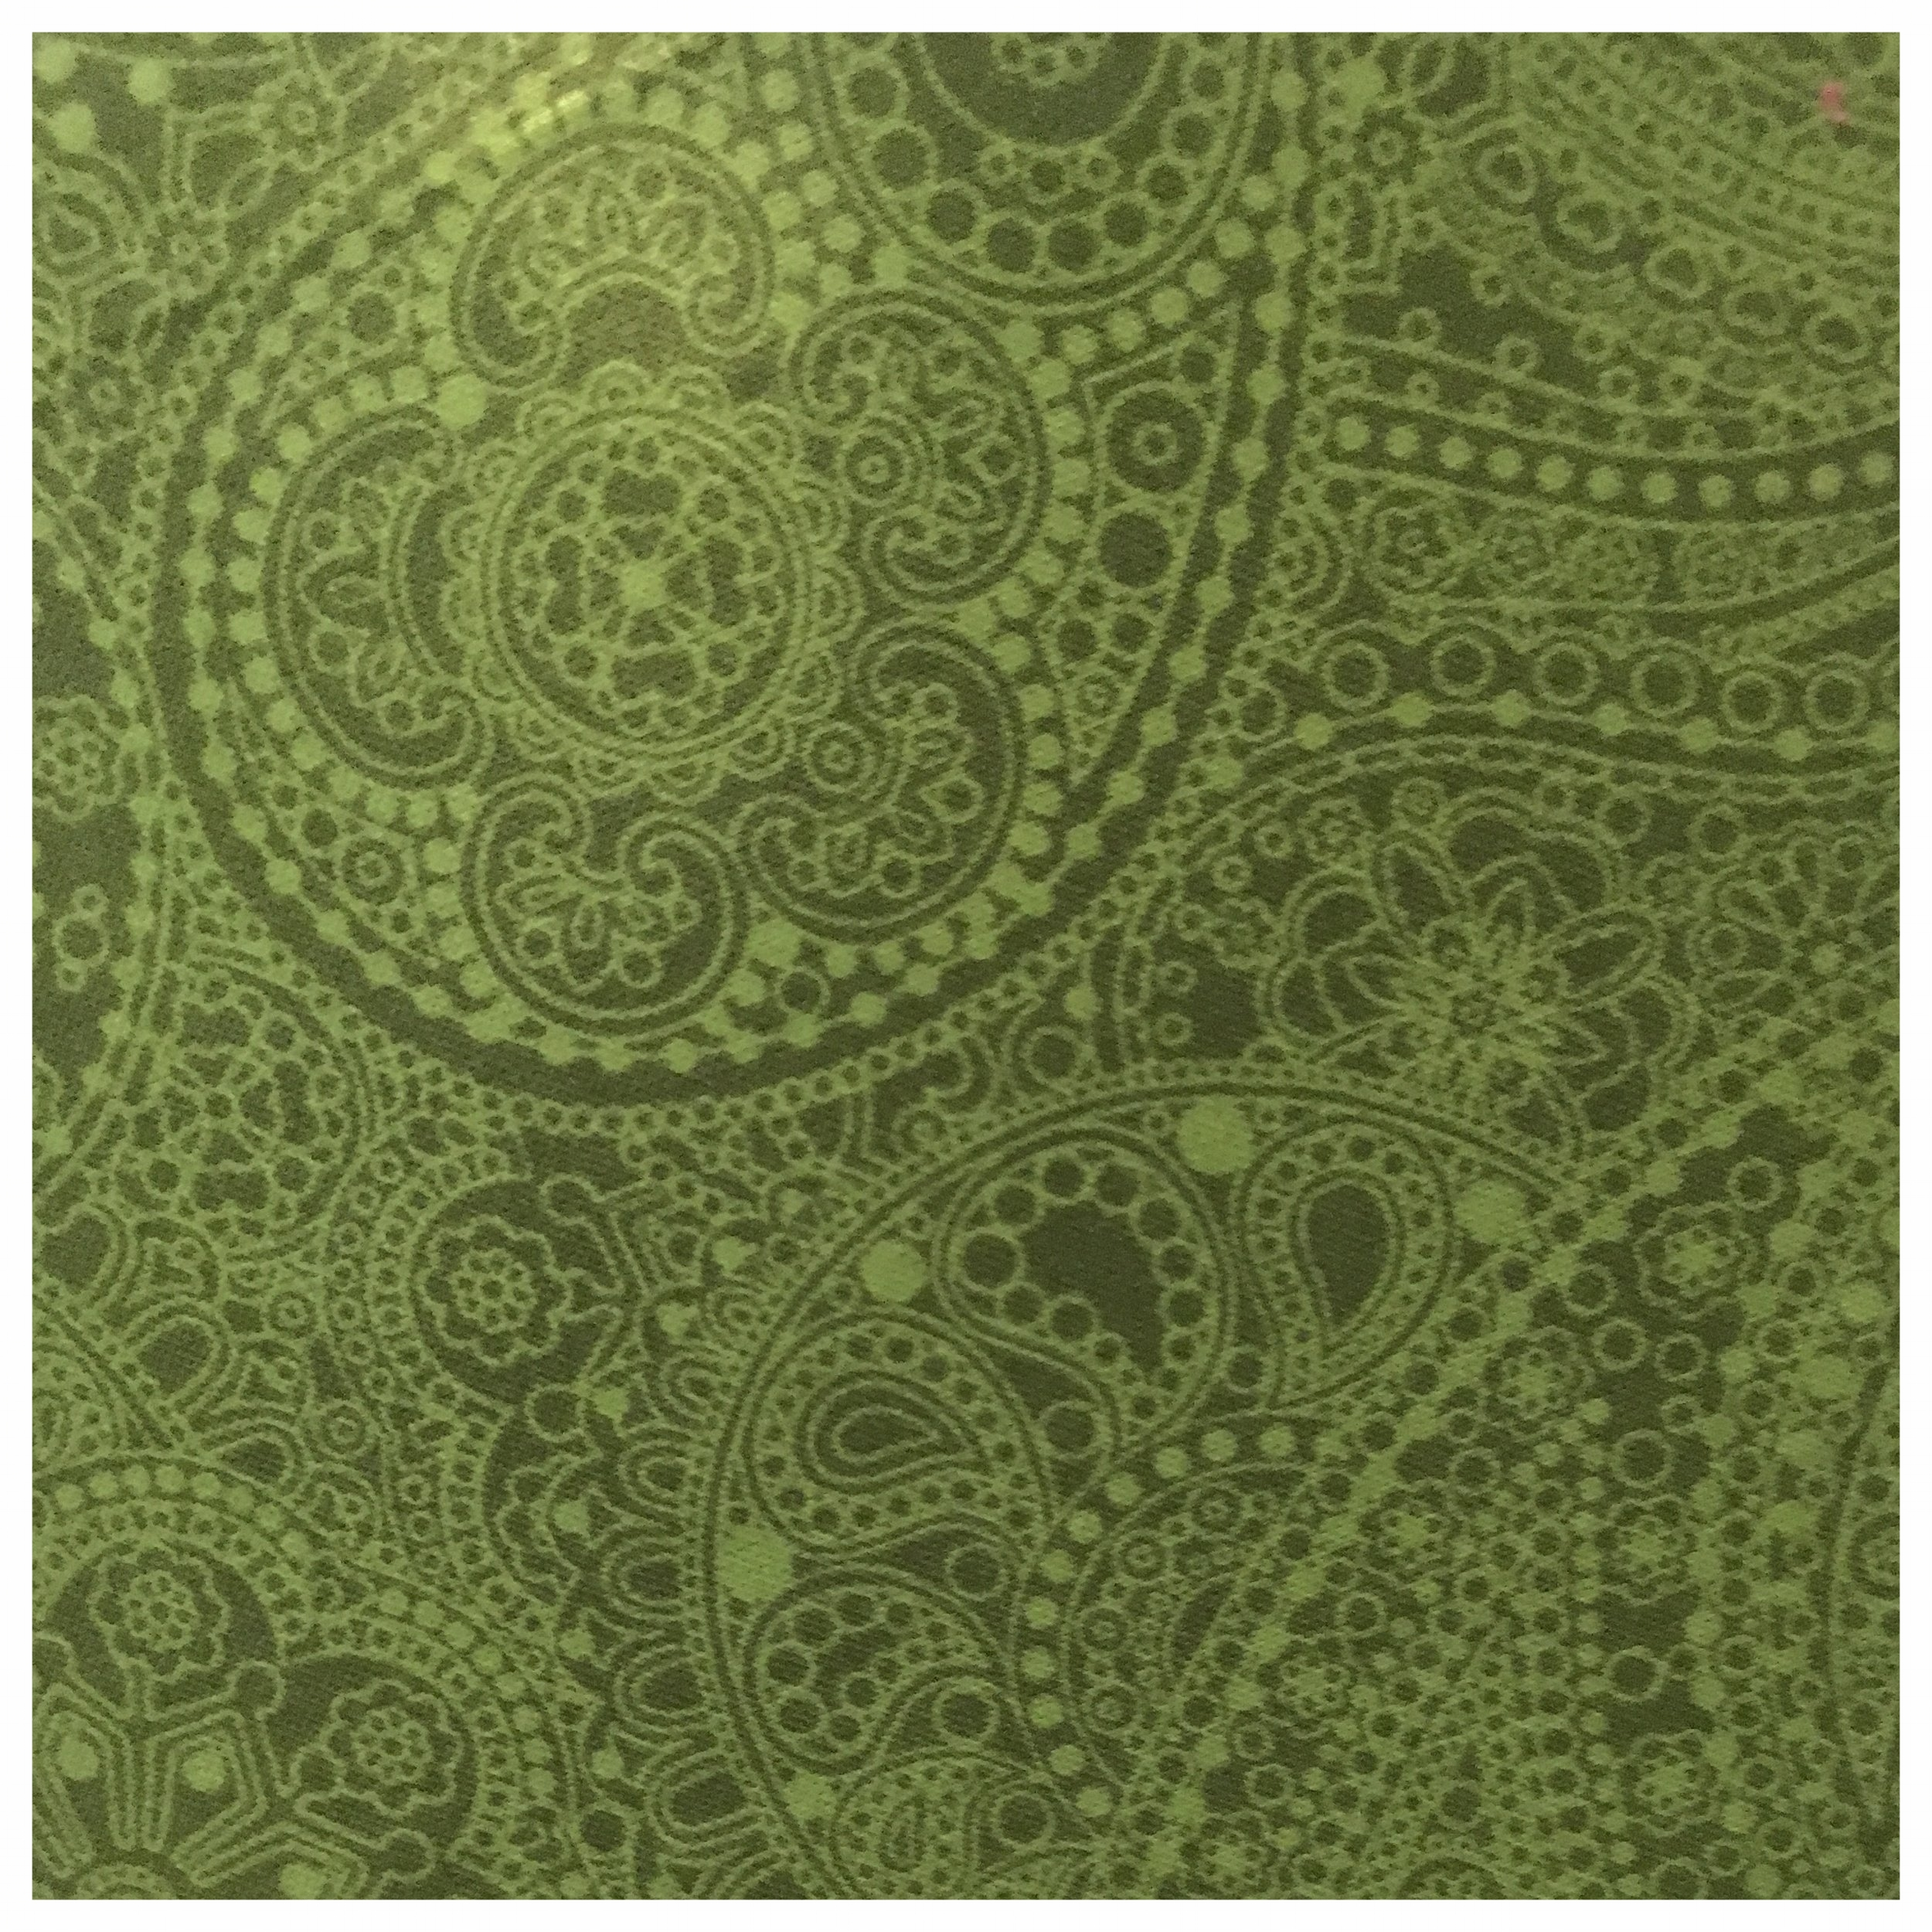 QUILTING FABRIC - ALL OUR FABIC IS 100% HIGH-QUALITY QUILTING COTTON. LARGE SELECTION OF WIDE-BACK BOTH IN FLANNEL AND COTTON, AS WELL AS SOME OF MY FAVOURITE DESIGNERS SELECTIONS.